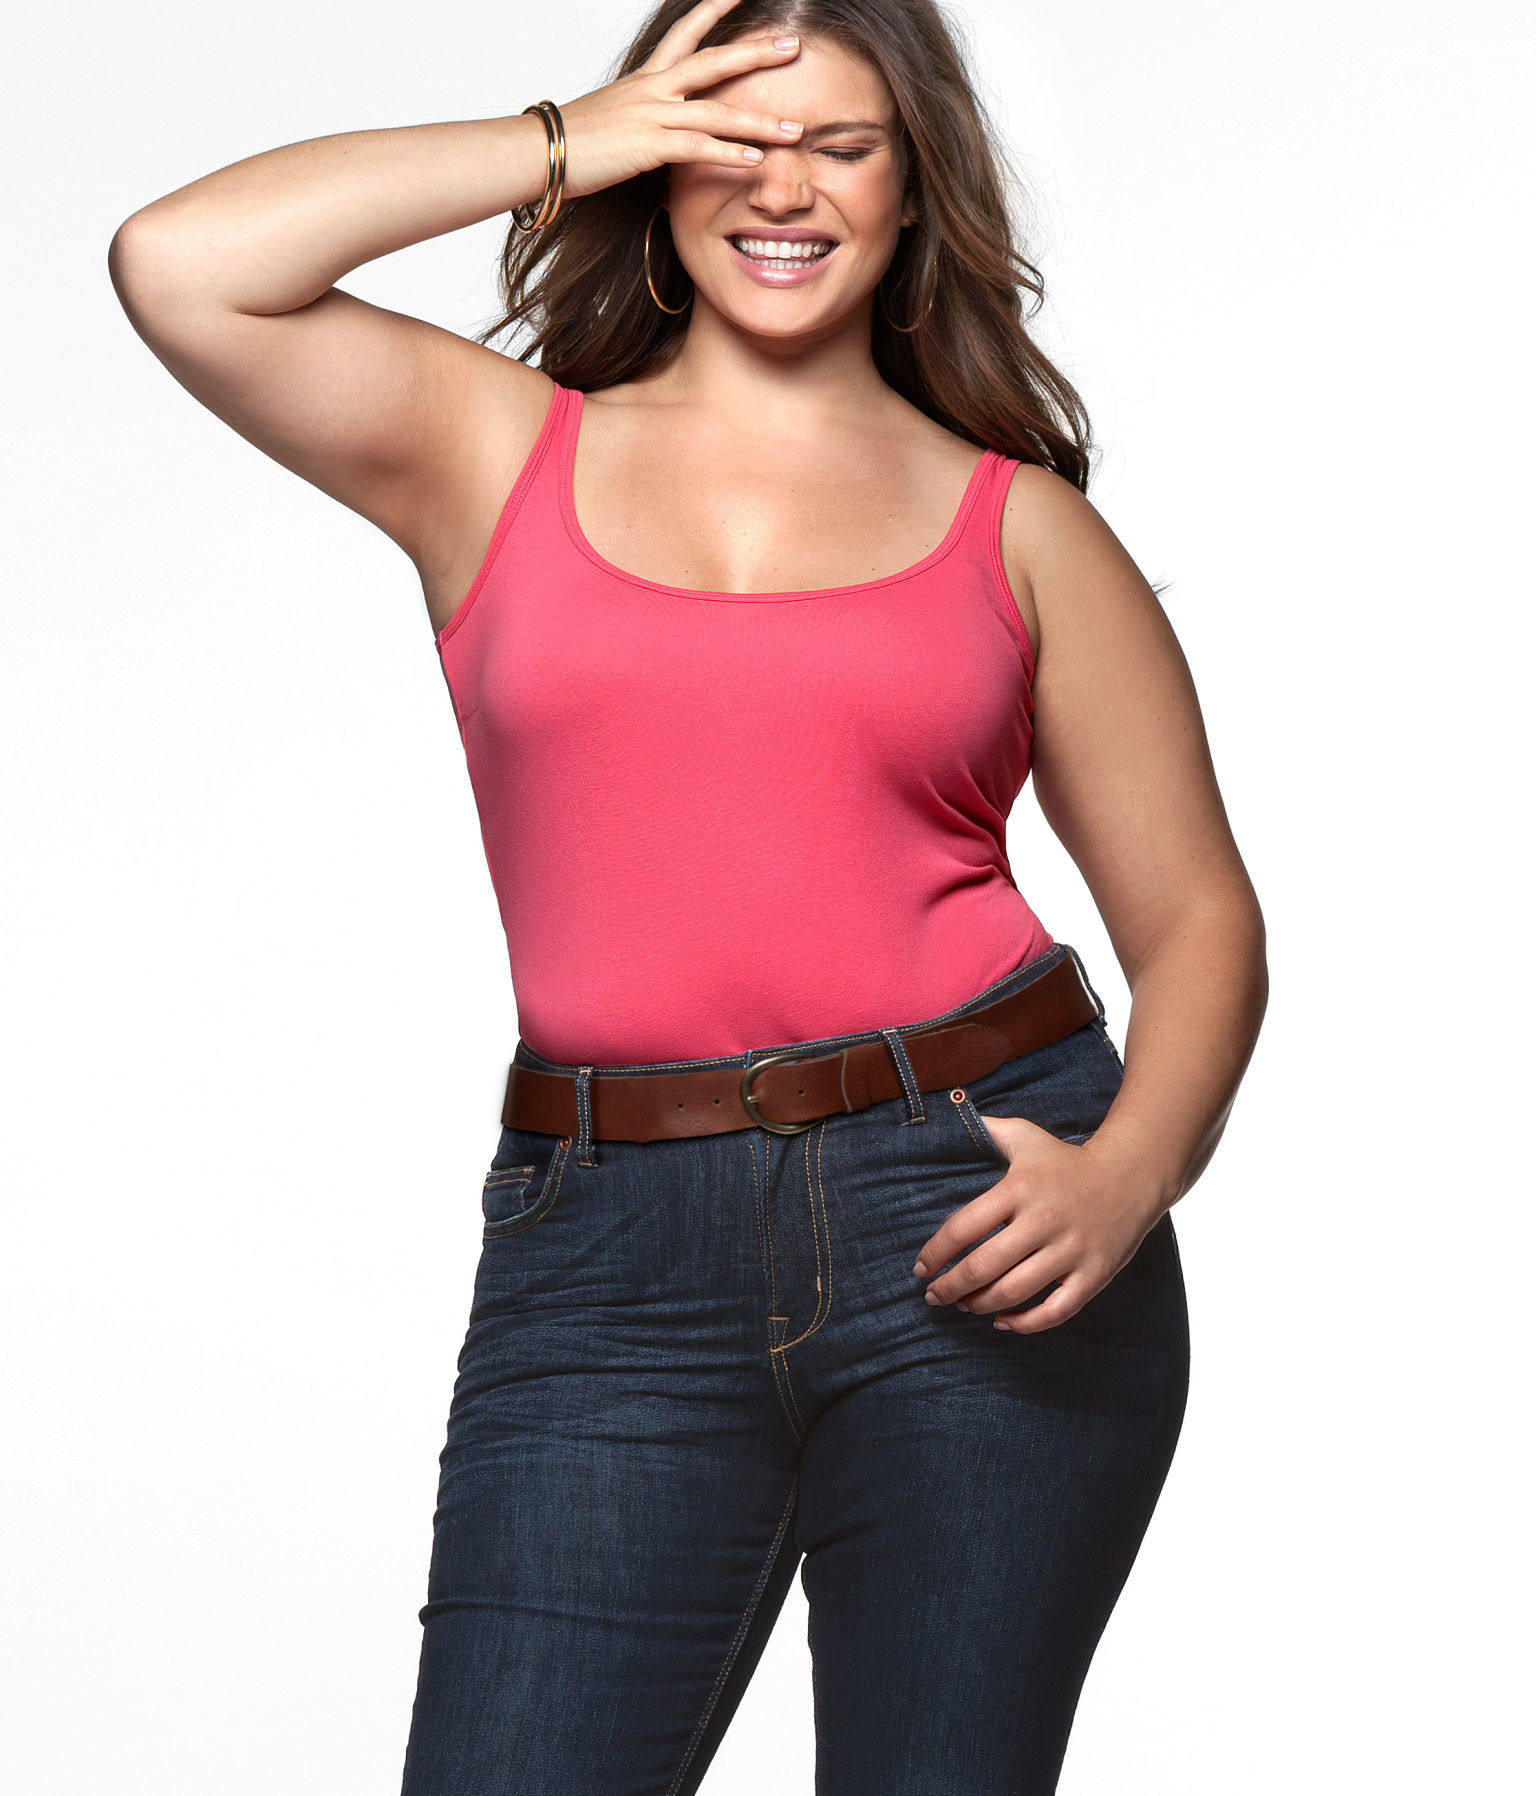 Bbw Tara Lynn HD Wallpaper